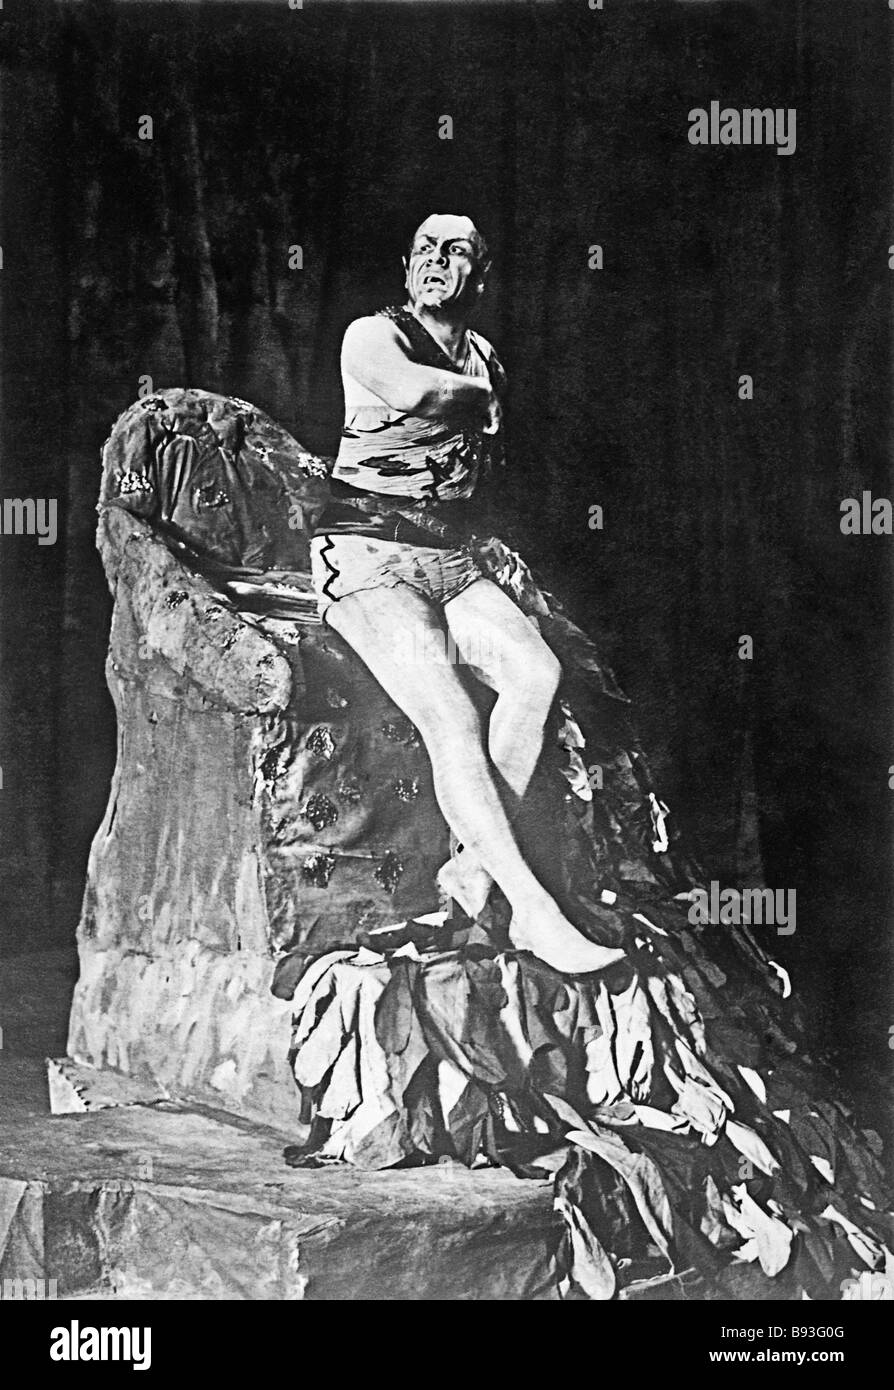 Fyodor Chaliapin as Mephistopheles in the opera Faust by Gounod Stock Photo